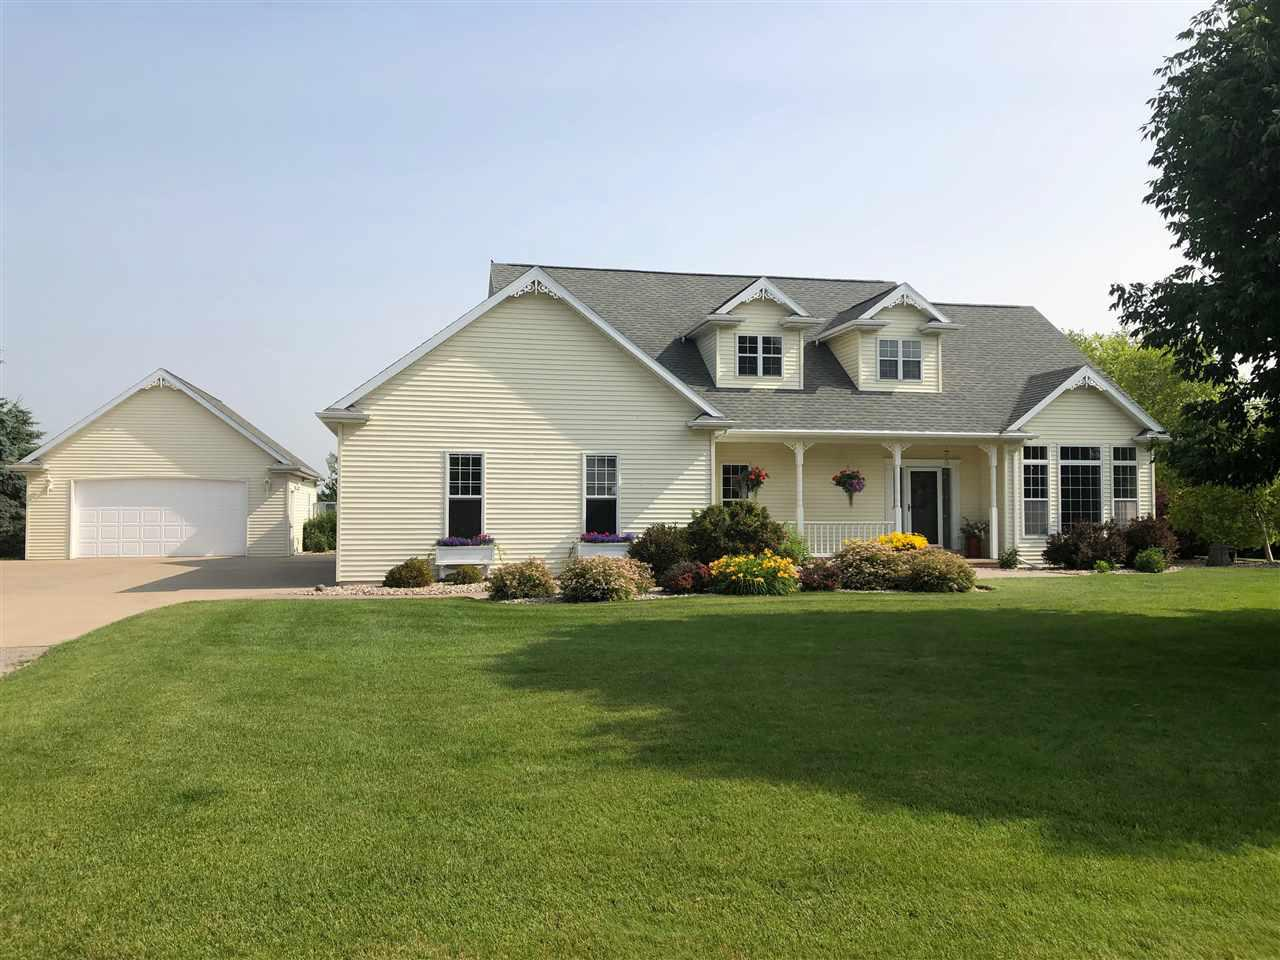 Entertaining at its Best! 4 bedrm 2 Full, 2 Half Bath home located on sprawling 1.76 acres, minutes from amenities. Open concept floor plan. Kitchen appliances included, granite counters, pantry & hardwood floors open to spacious living room, gas fireplace with lots of windows for natural lighting. Dining area has wall of windows and view of private yard. st floor office. First Floor Private Master Suite, jetted tub, shower, double sinks & walk in closet. 1st fl laundry w/sink. 3 bedrooms, loft area and separate office/game rm. 2.5 det garage-heated.Shed.Steps Garage to Basement.Patio.FirePit.